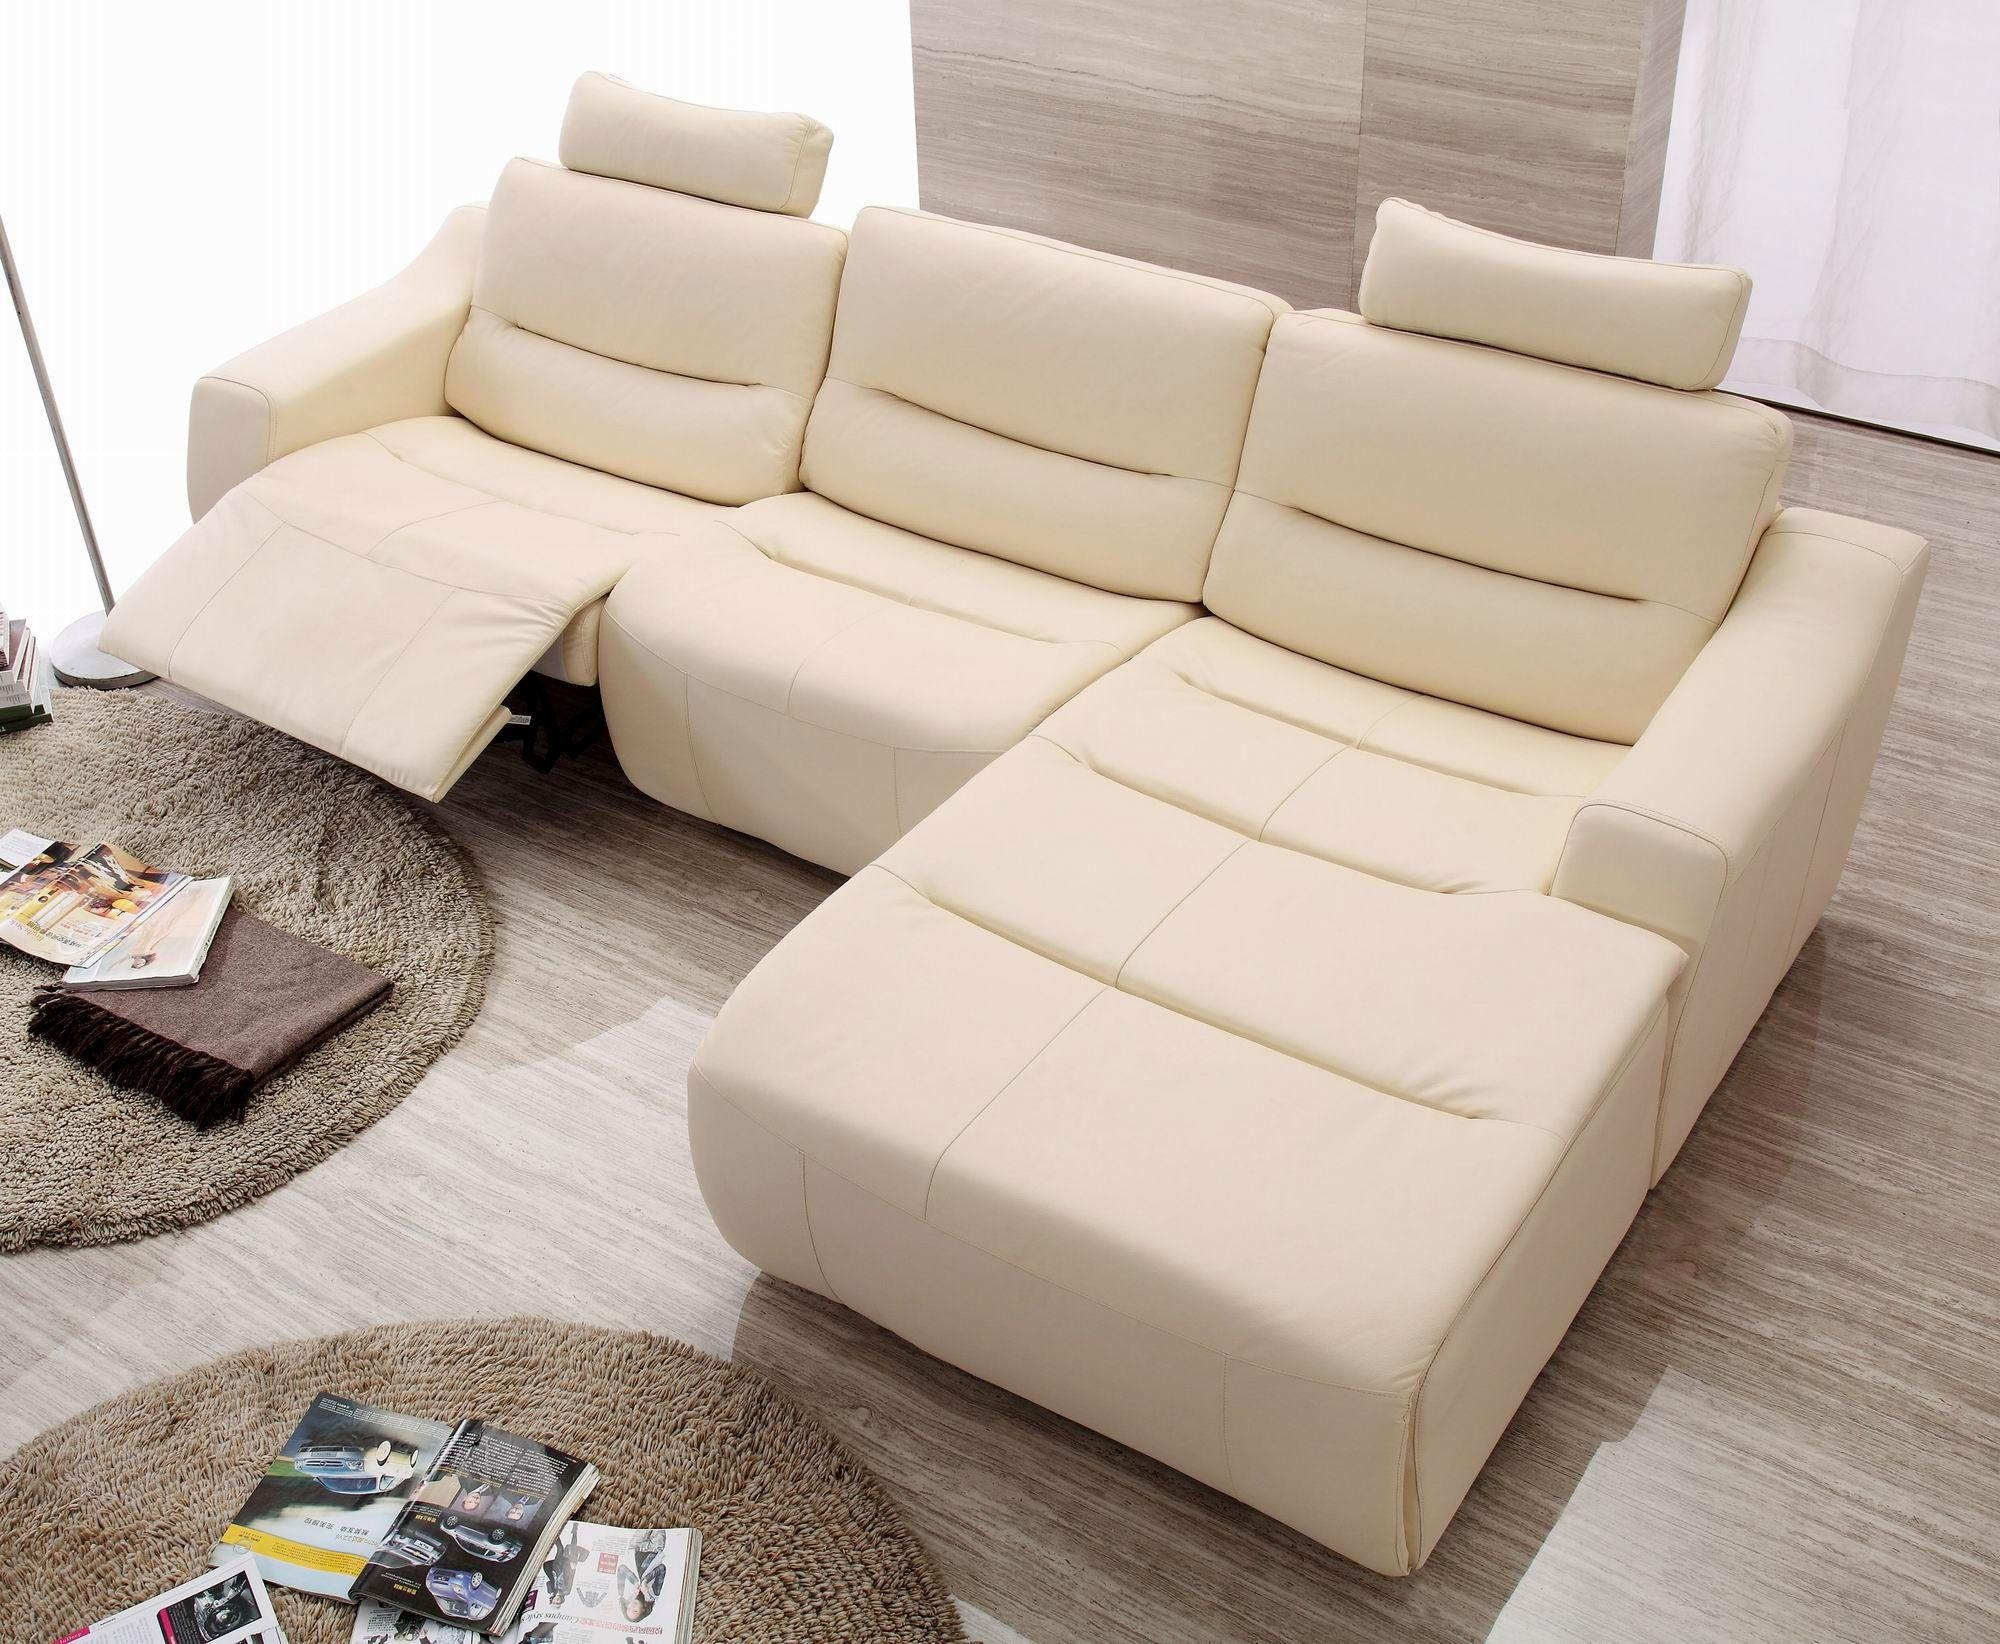 Contemporary Sectional Sofas For Small Spaces #9270 With Modern Sectional Sofas For Small Spaces (View 9 of 20)